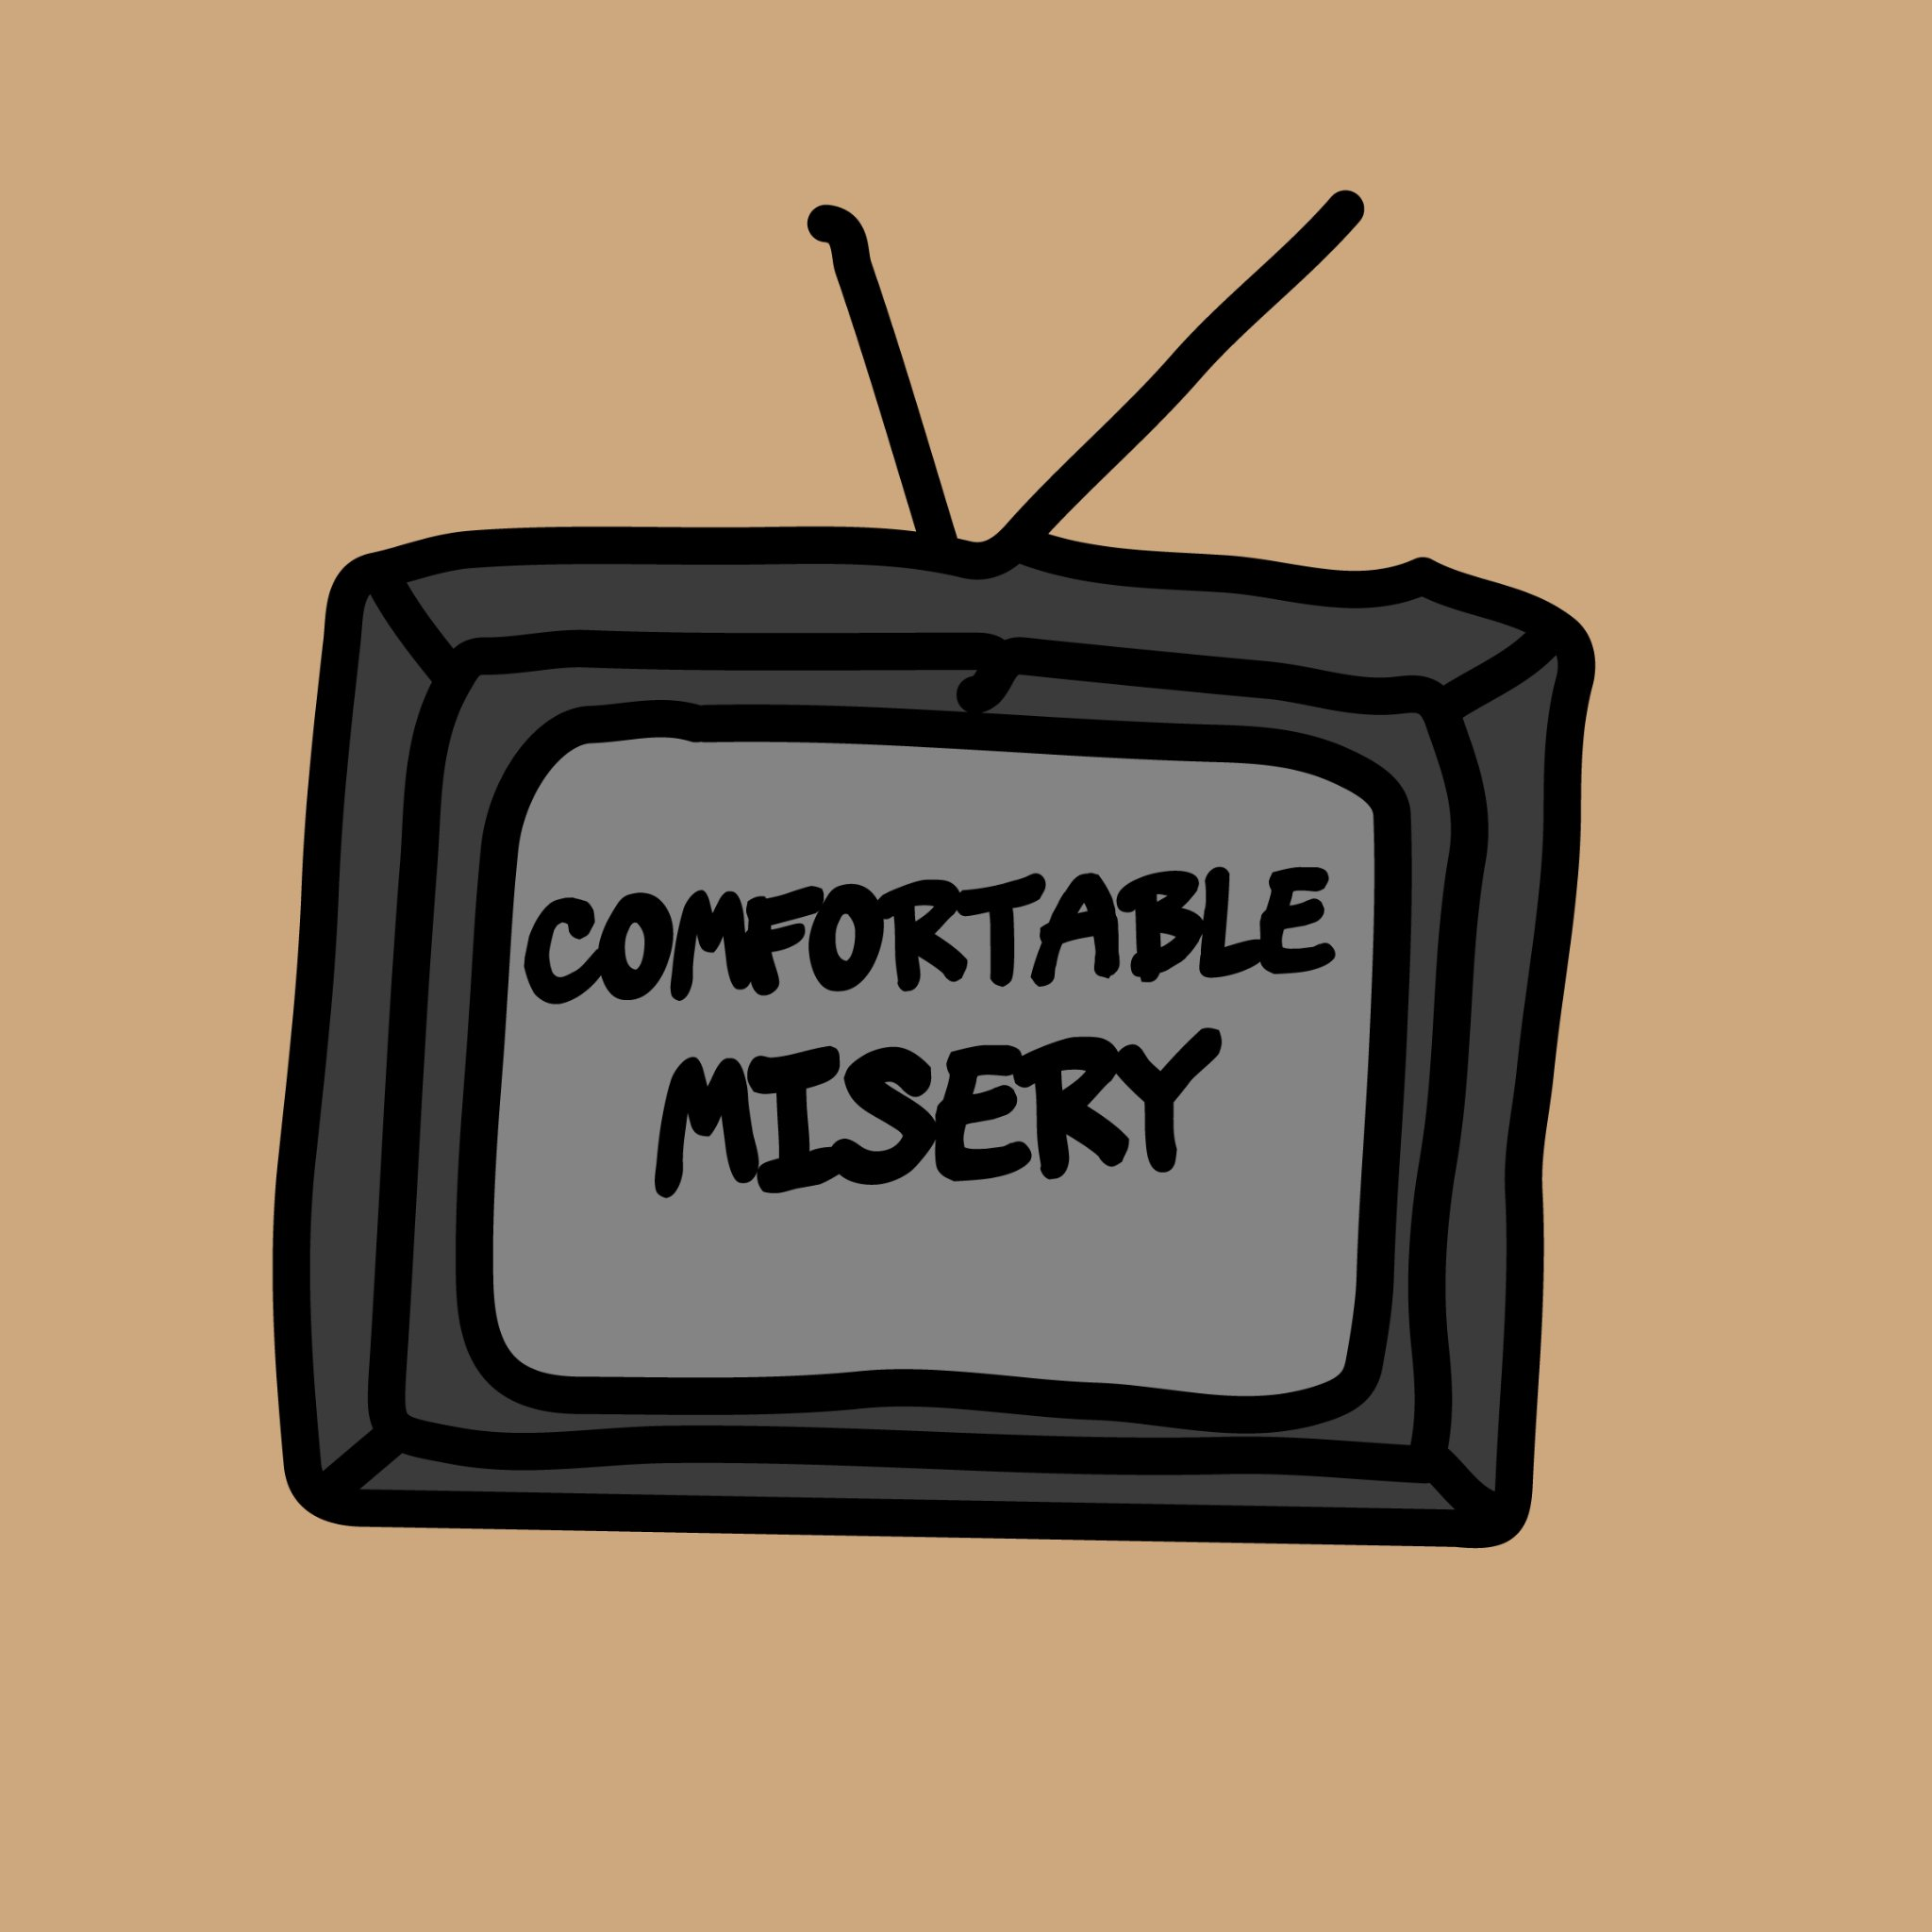 Comfort clipart misery Comfortable Misery (@comfymisery) Comfortable Misery